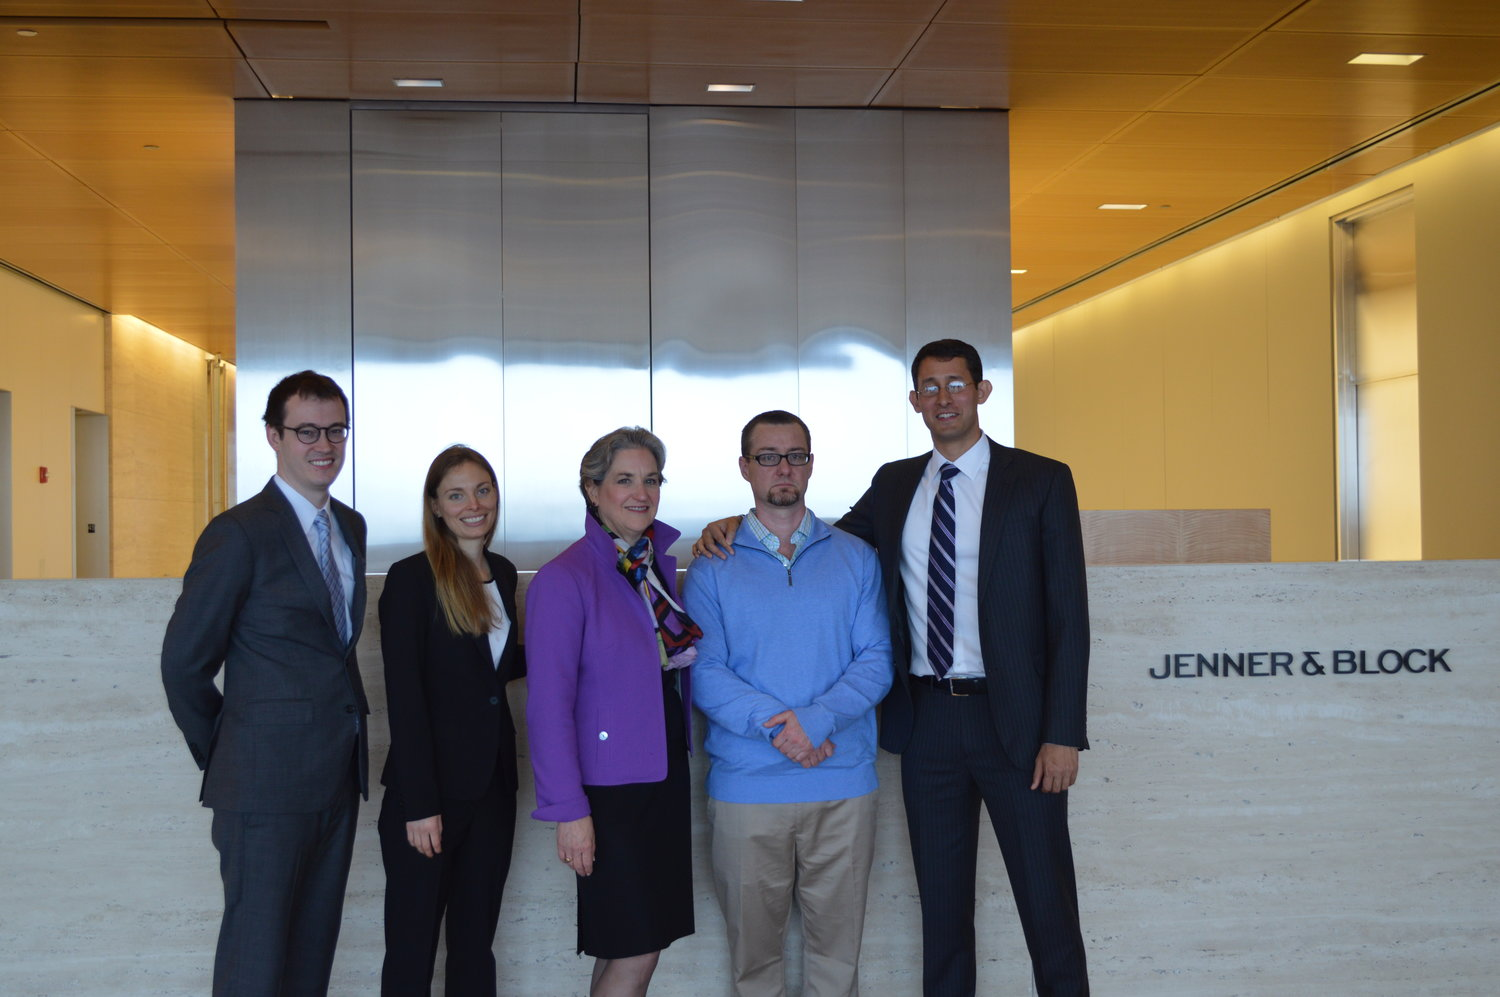 From left:  Associate James Dawson, Associate Julia Mazur (Katten Muchin Rosenman LLP), Partner Terri Mascherin, Adam Gray, Associate Brij Patnaik